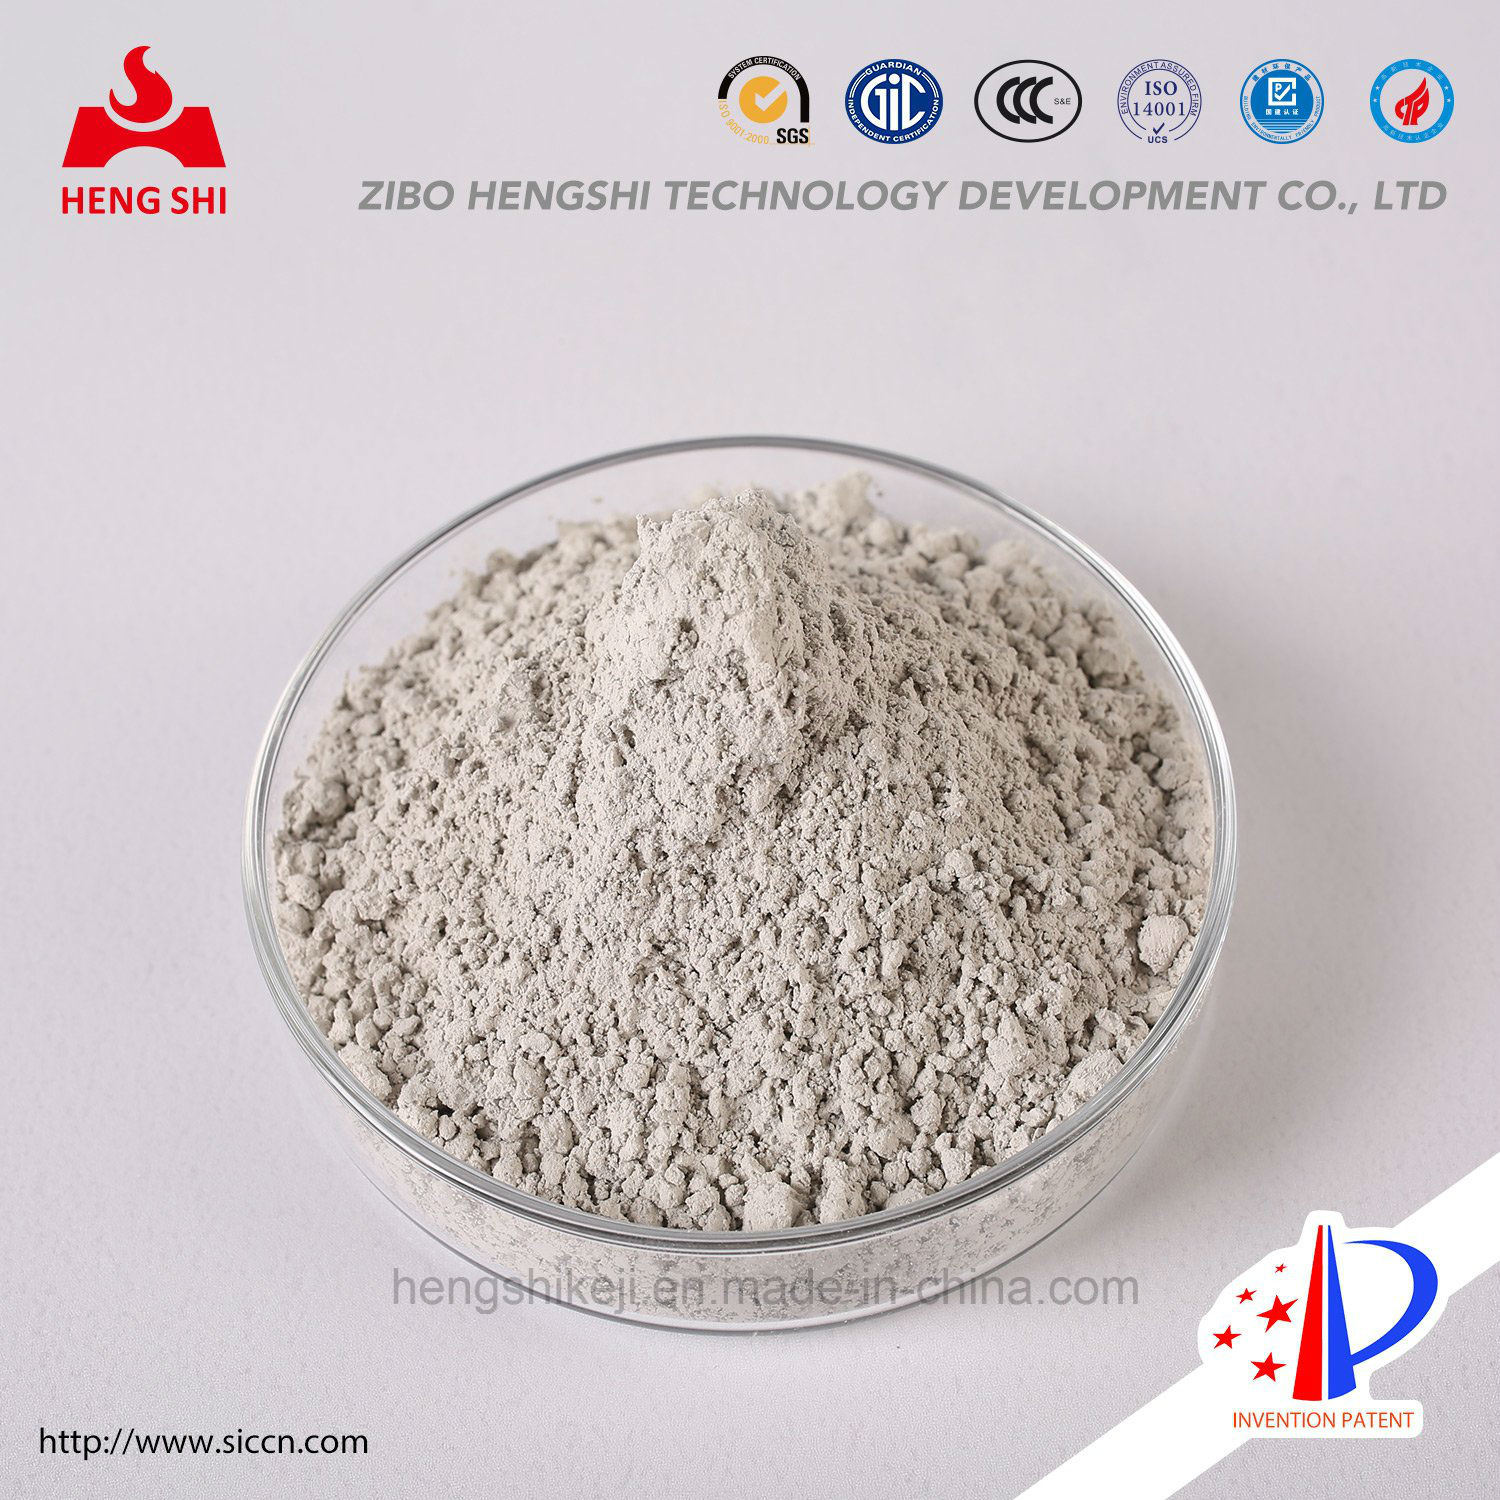 Si3n4/Silicon Nitride Powder for Photovoltaic Coating/Ceramic/Refractory